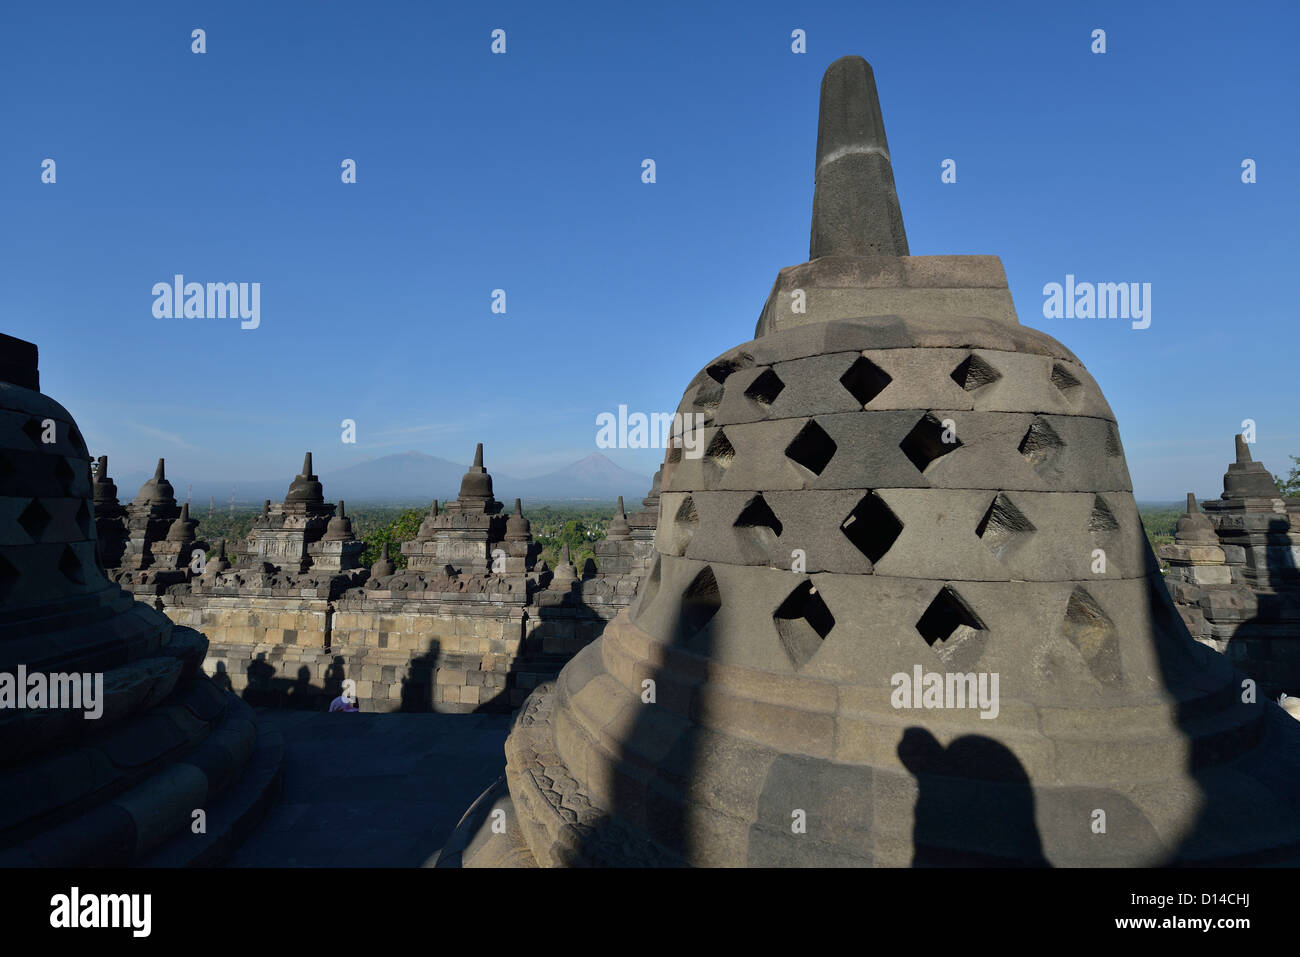 The stoupas at Borobudur with the view of Merapi in the background; Central Java, Indonesia. - Stock Image